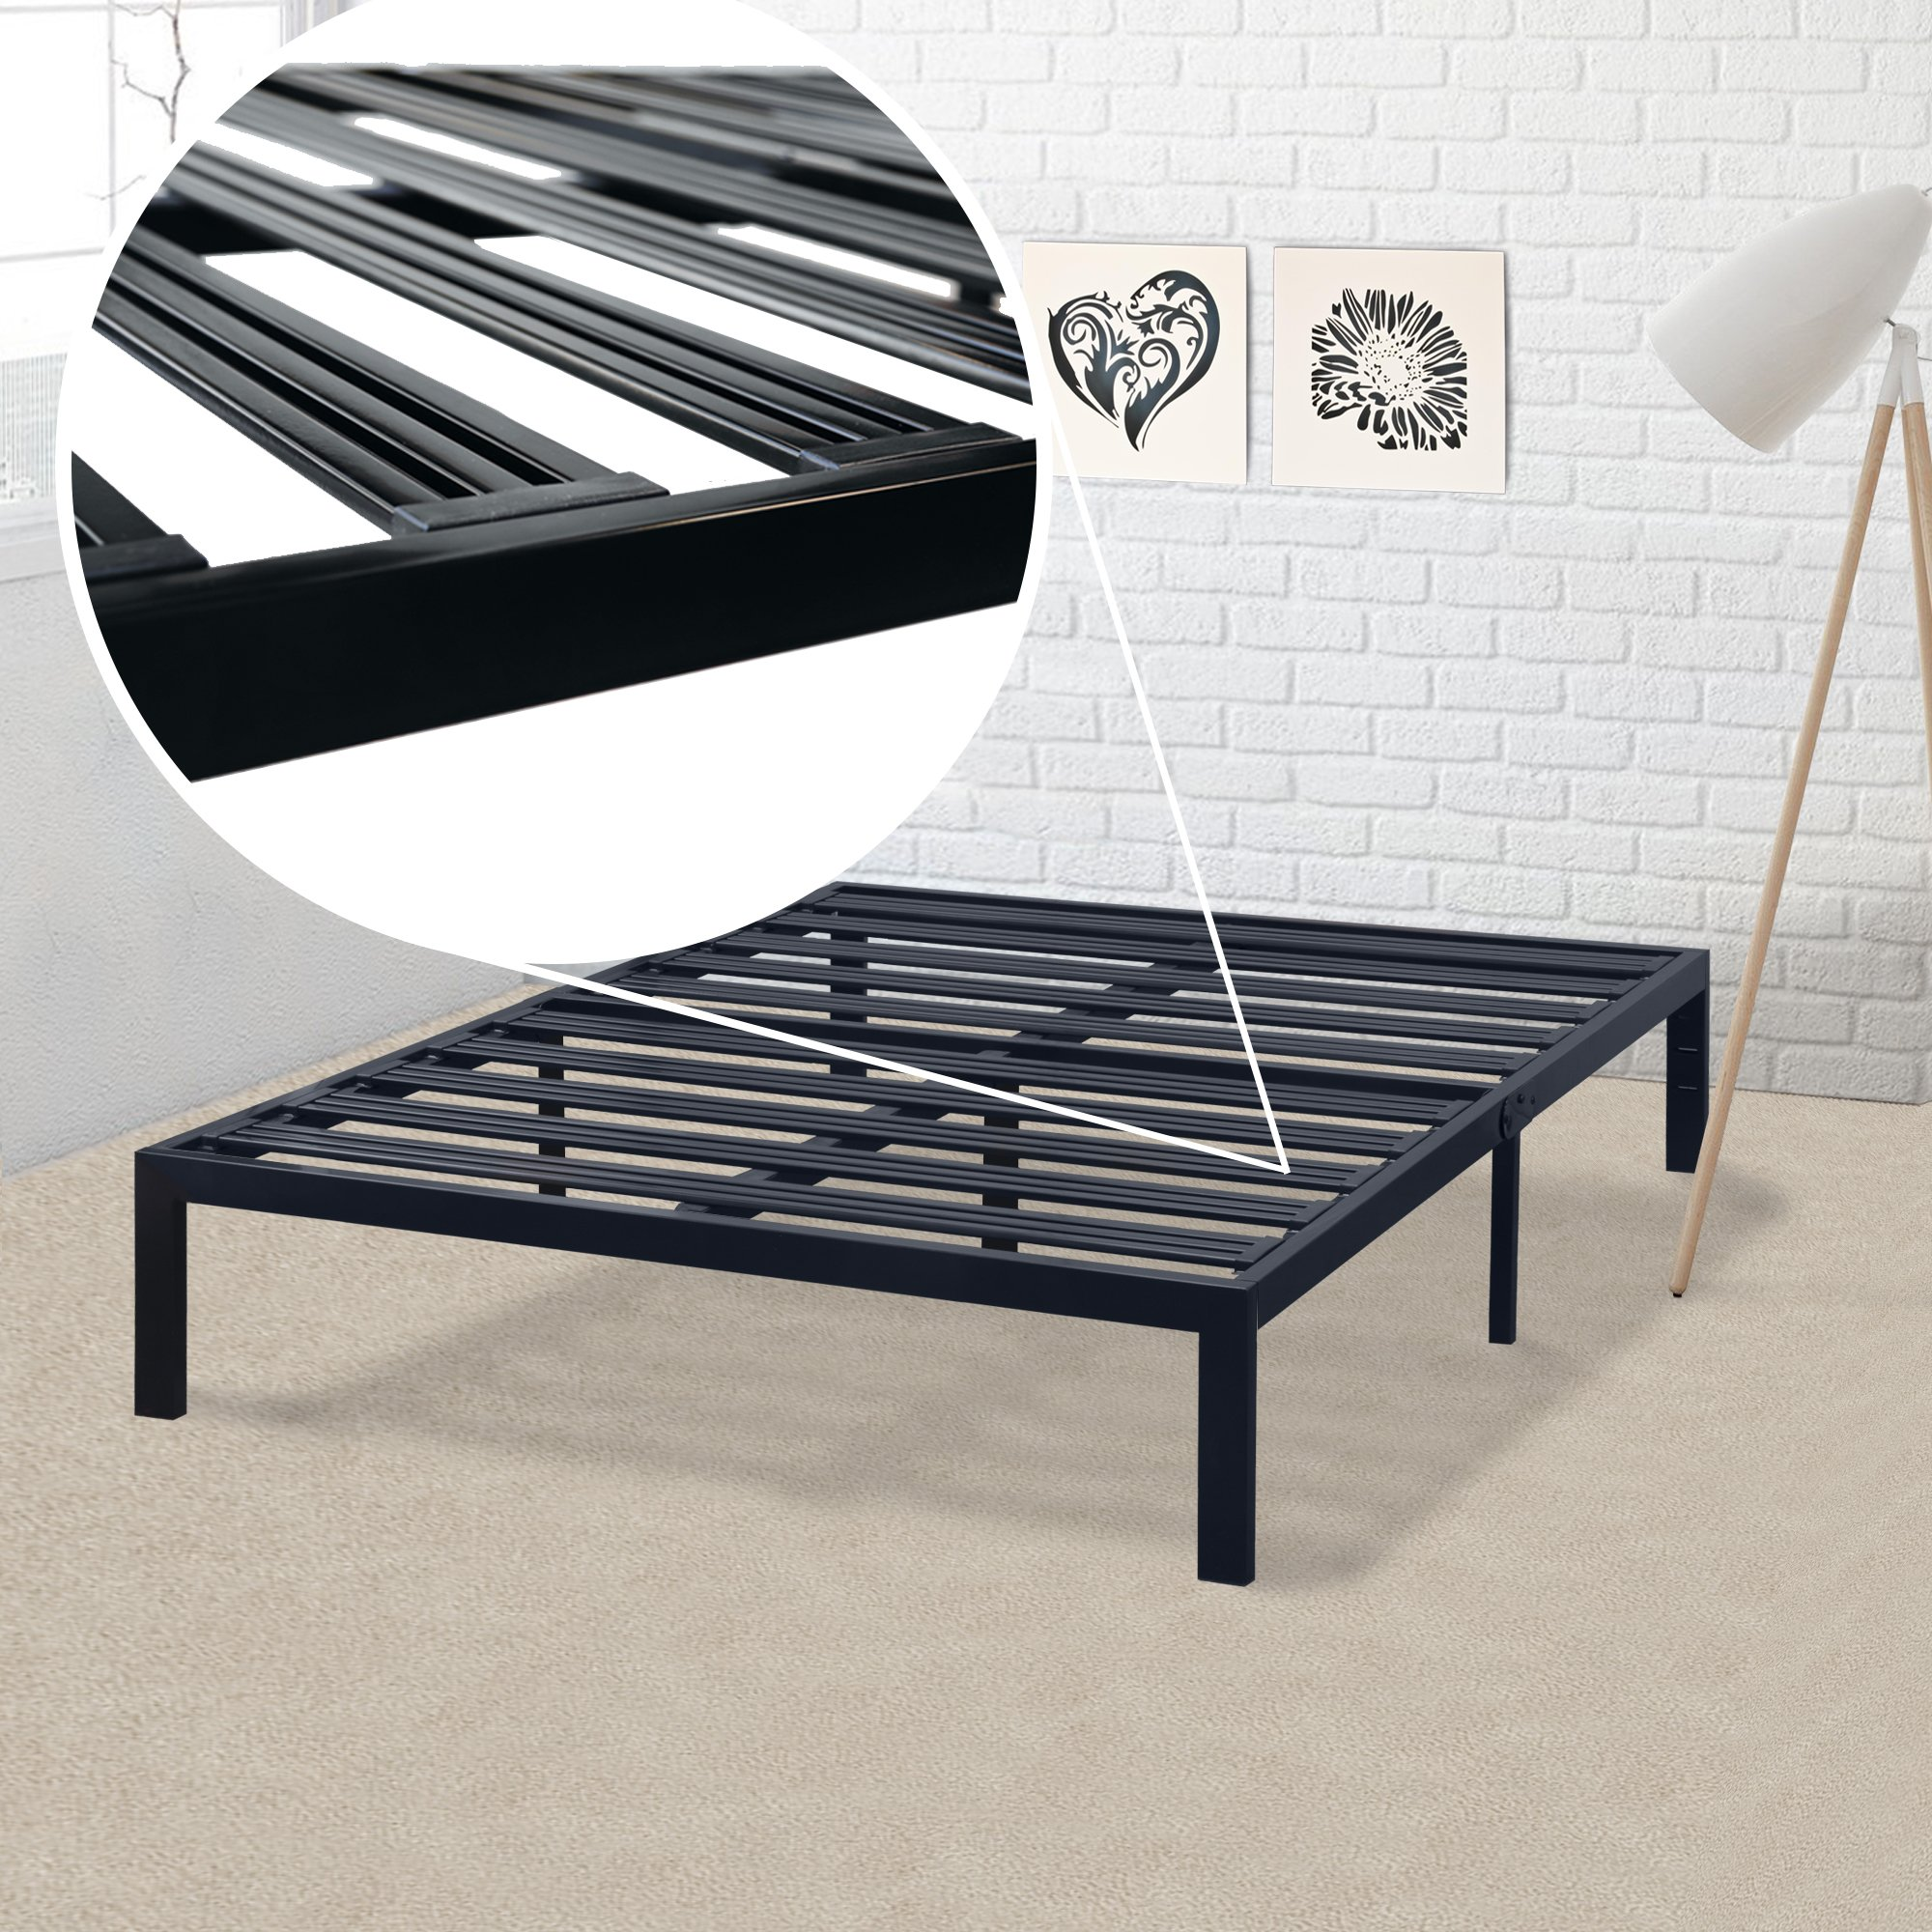 Mellow BP-E-BKQ Rocky Base E 14'' Platform Bed, Queen, Black